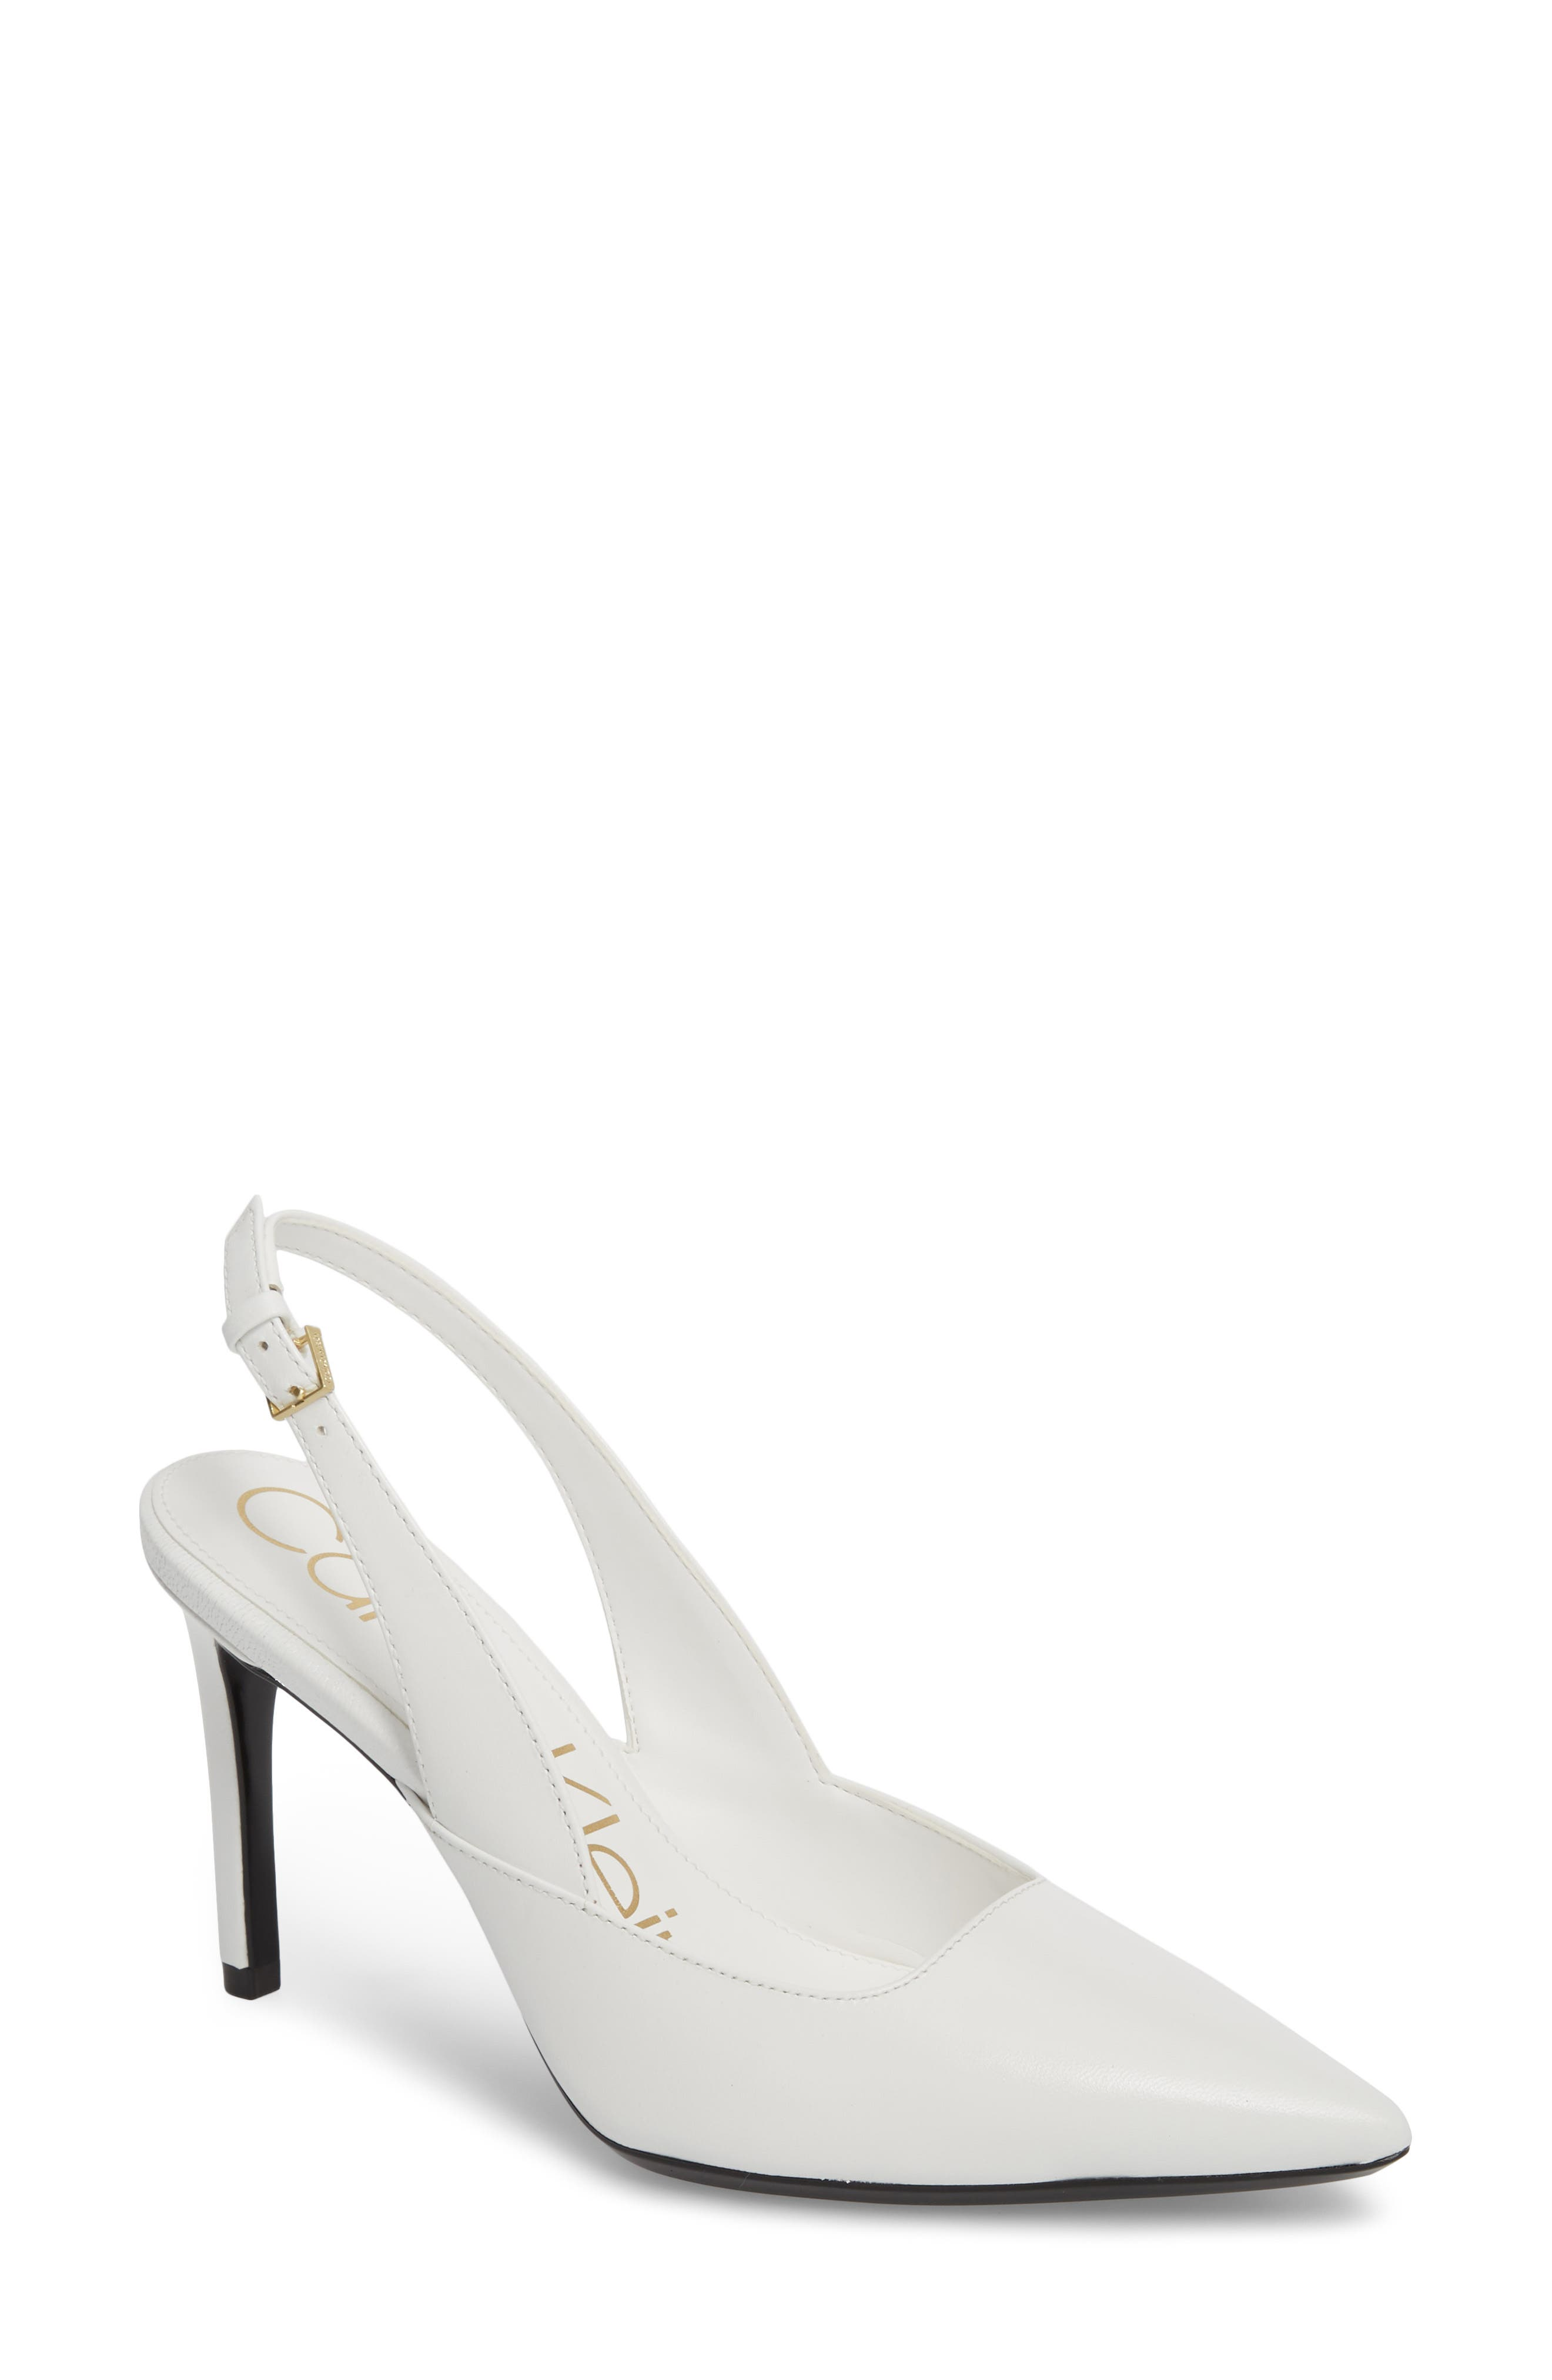 Rielle Slingback Pump,                         Main,                         color, Platinum White Leather